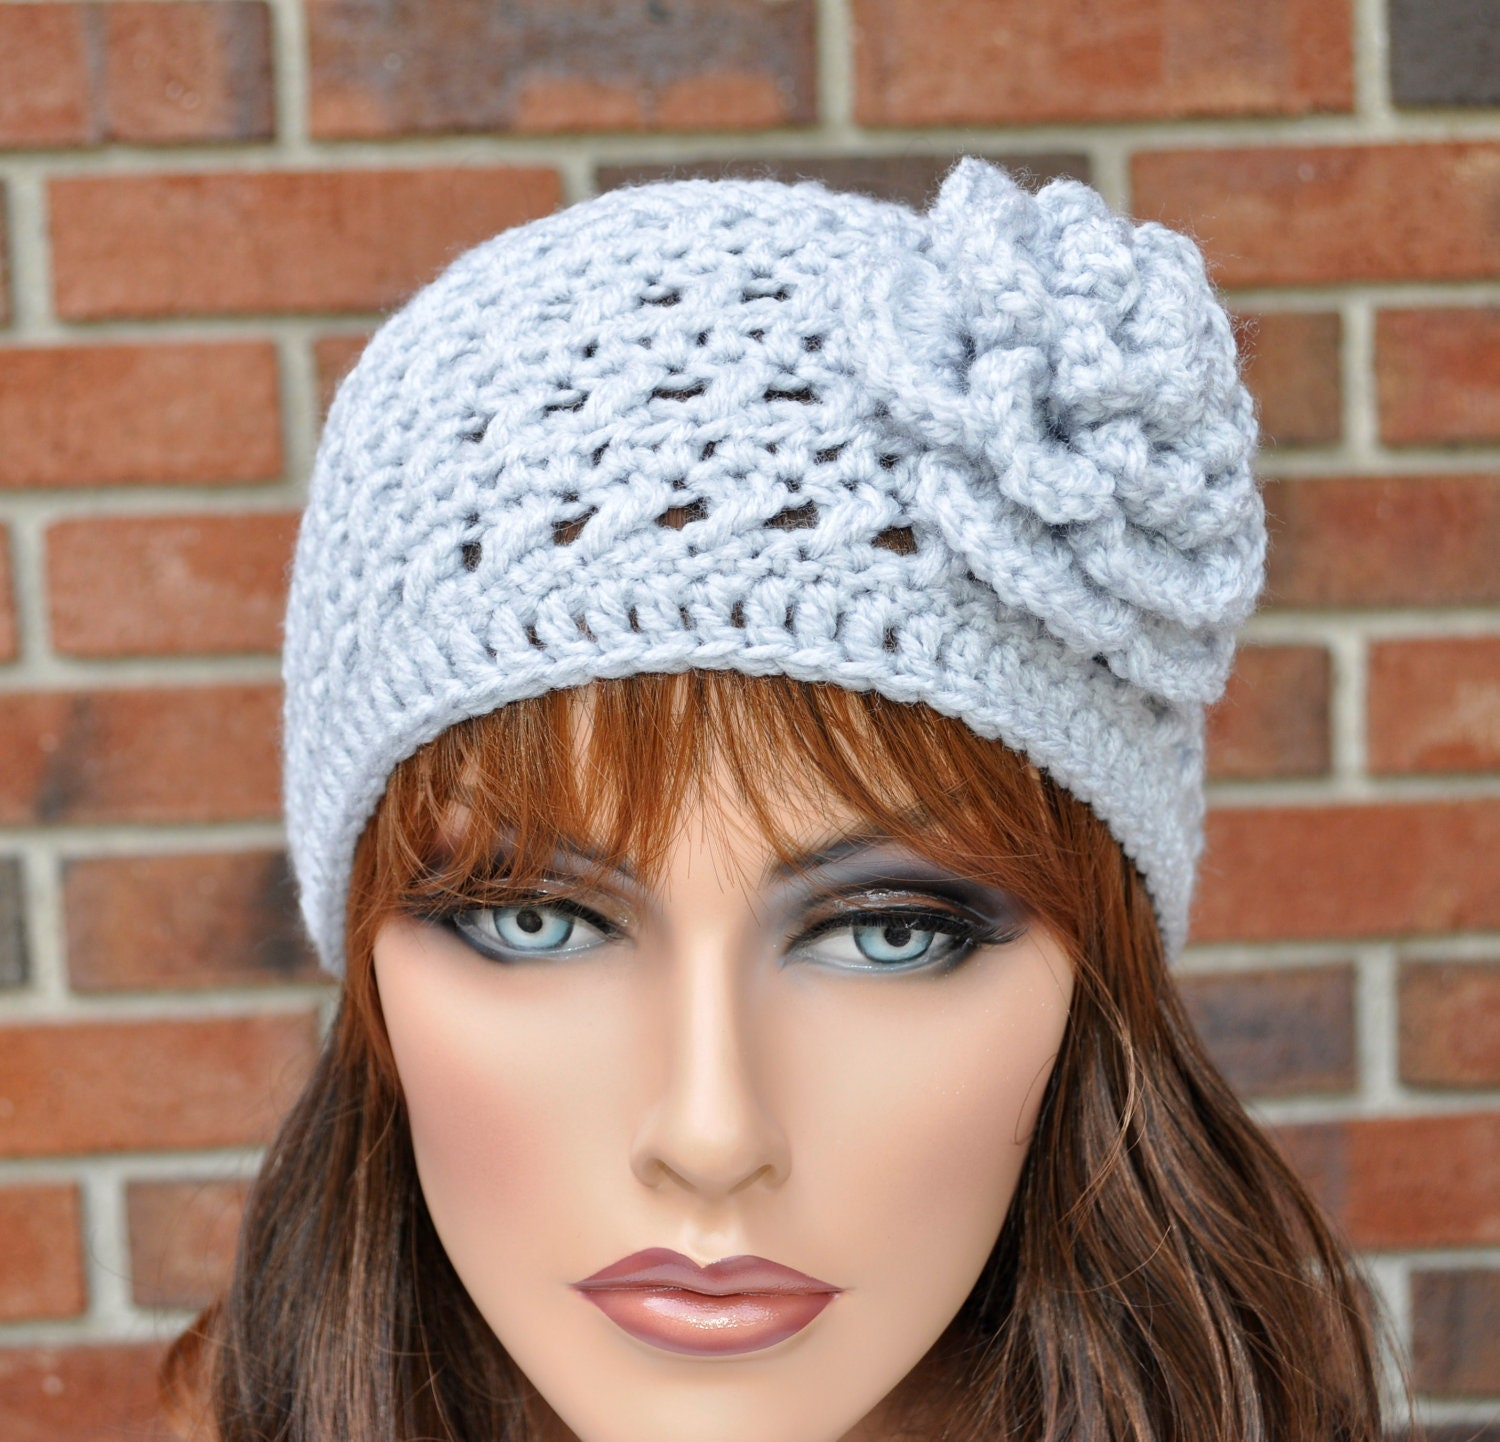 Free Crochet Patterns For Wide Headbands : Items similar to Extra wide Crochet Headband Ear Warmer ...